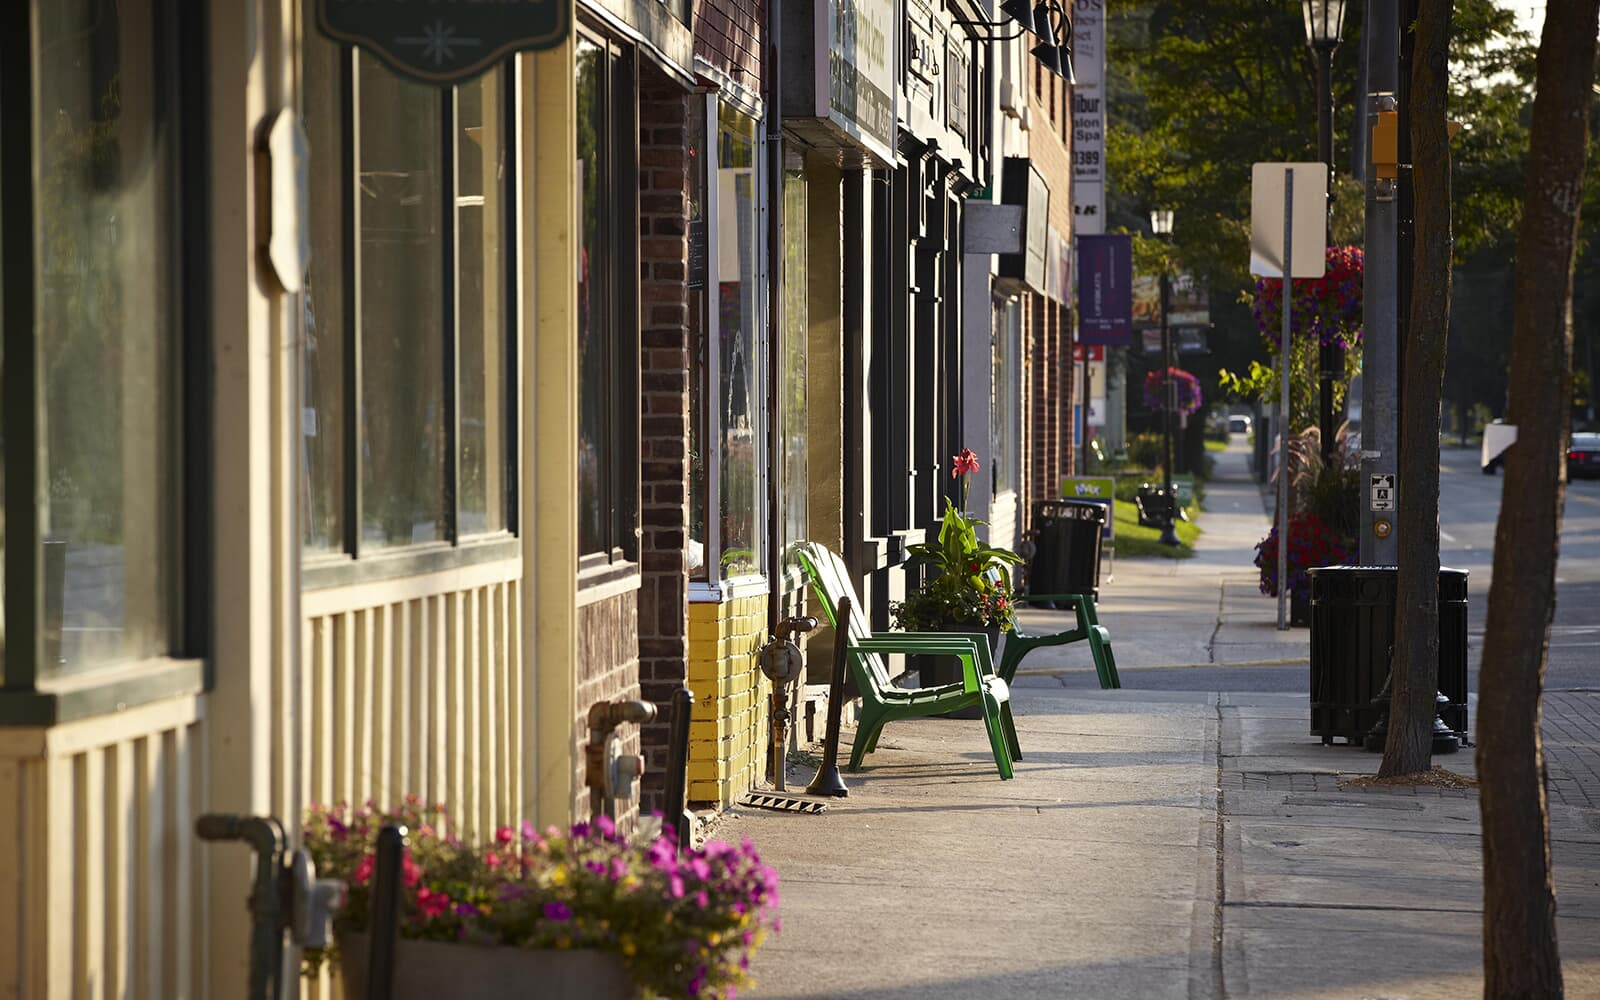 Sidewalk View of Shops in Baxter, Ontario.